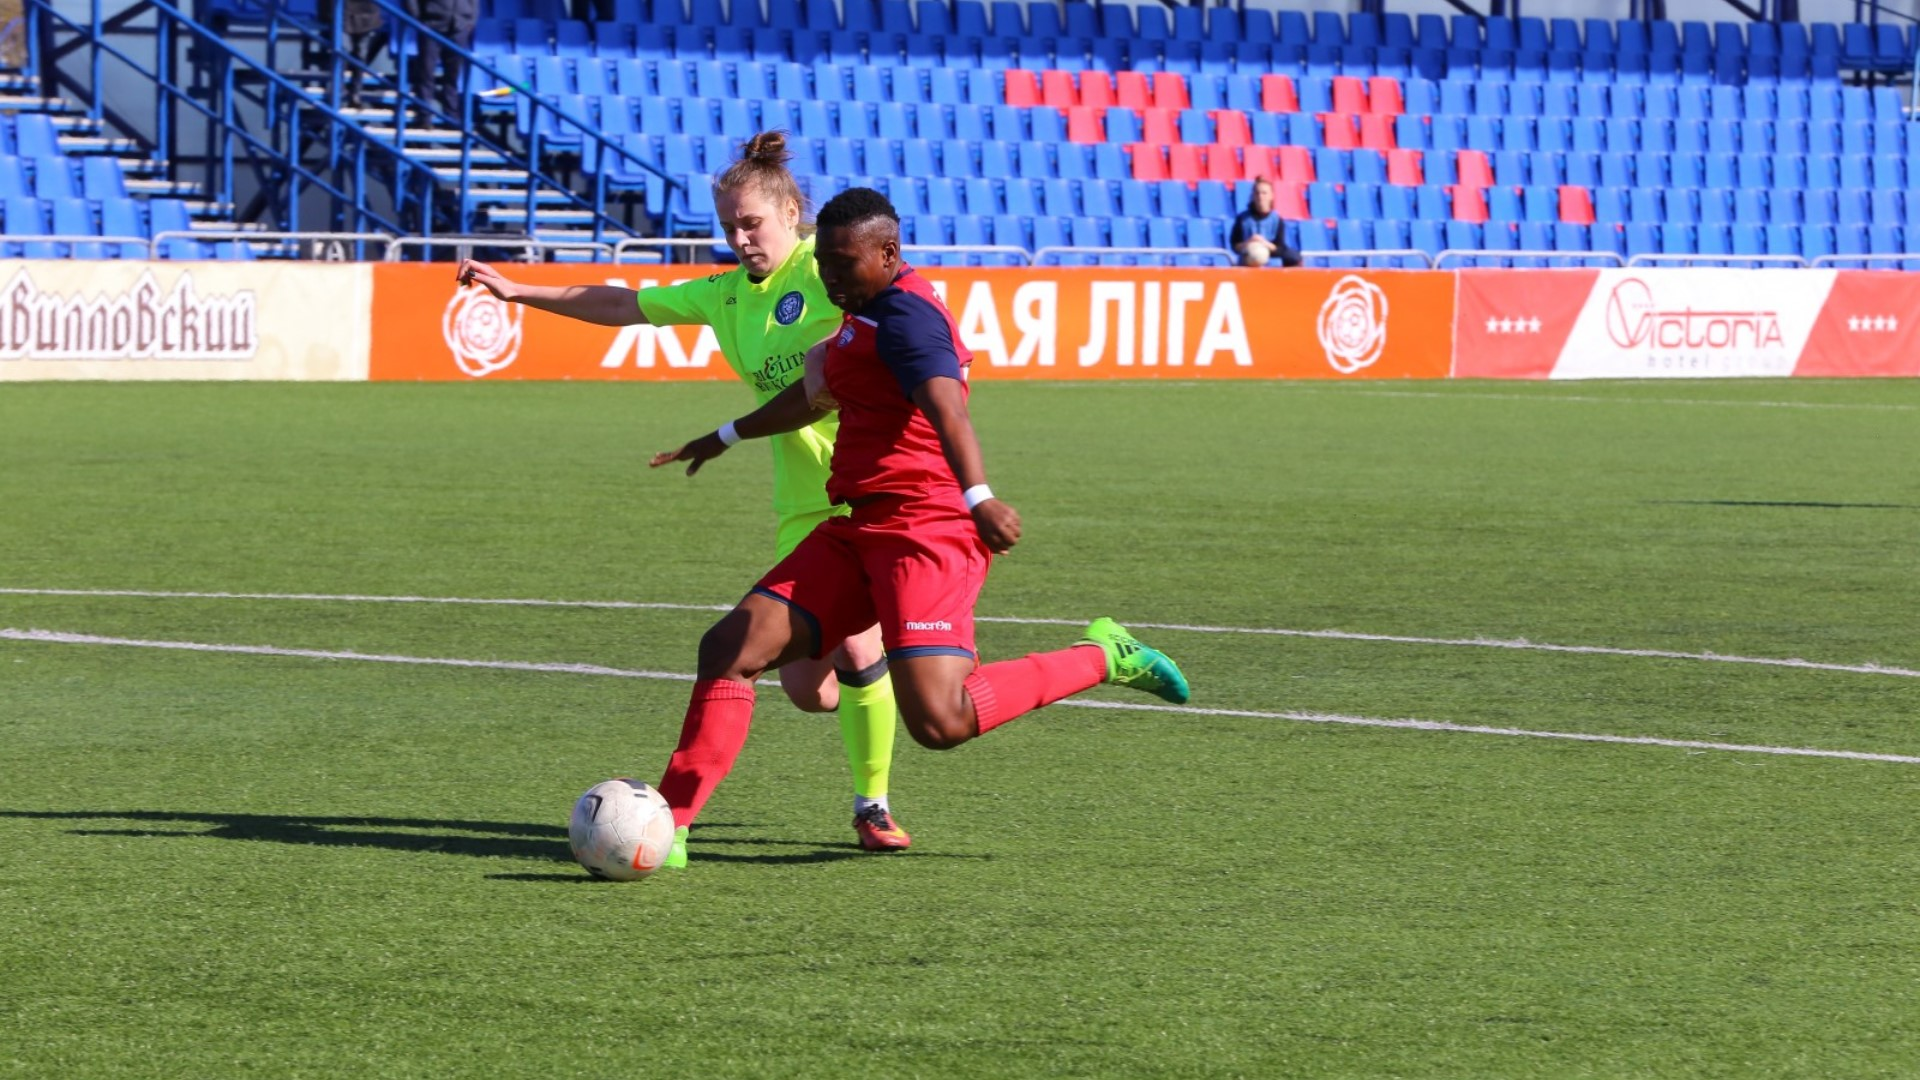 Minsk part ways with Oghiabekhva and Wogu